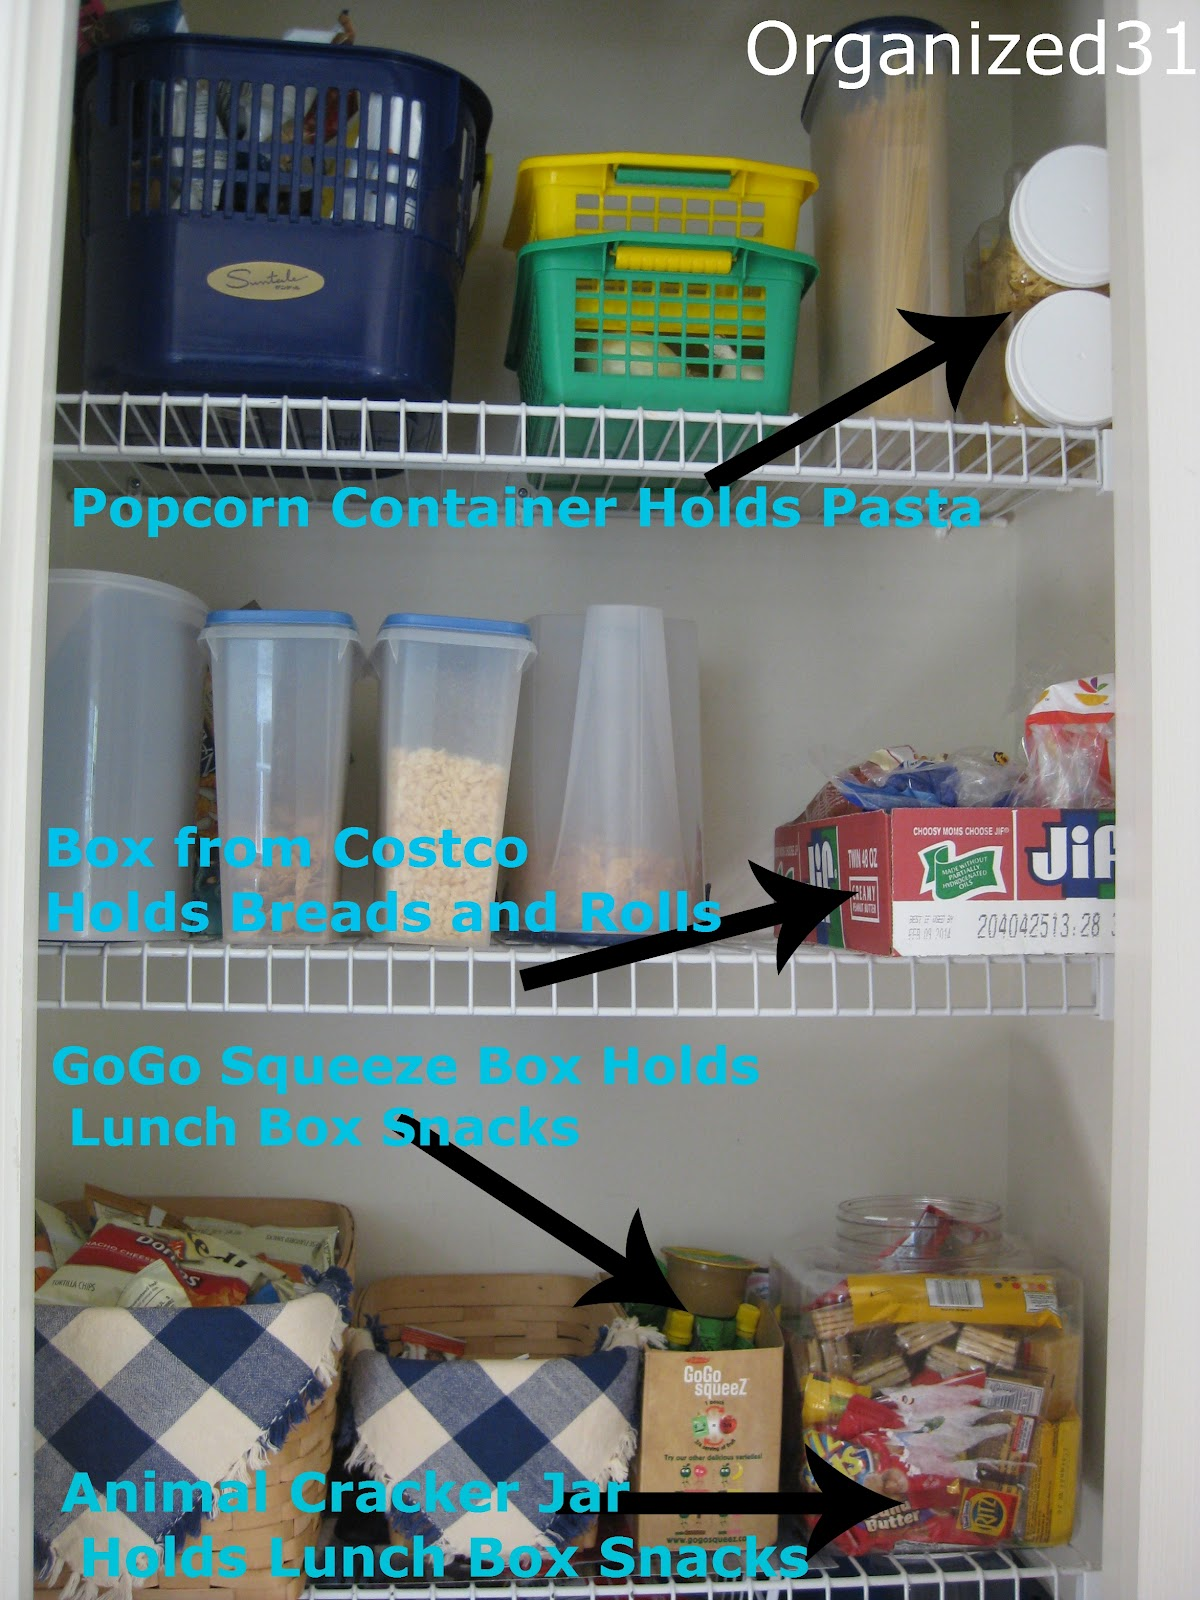 Organizing My Kitchen with Repurposed Packaging - Organized 31